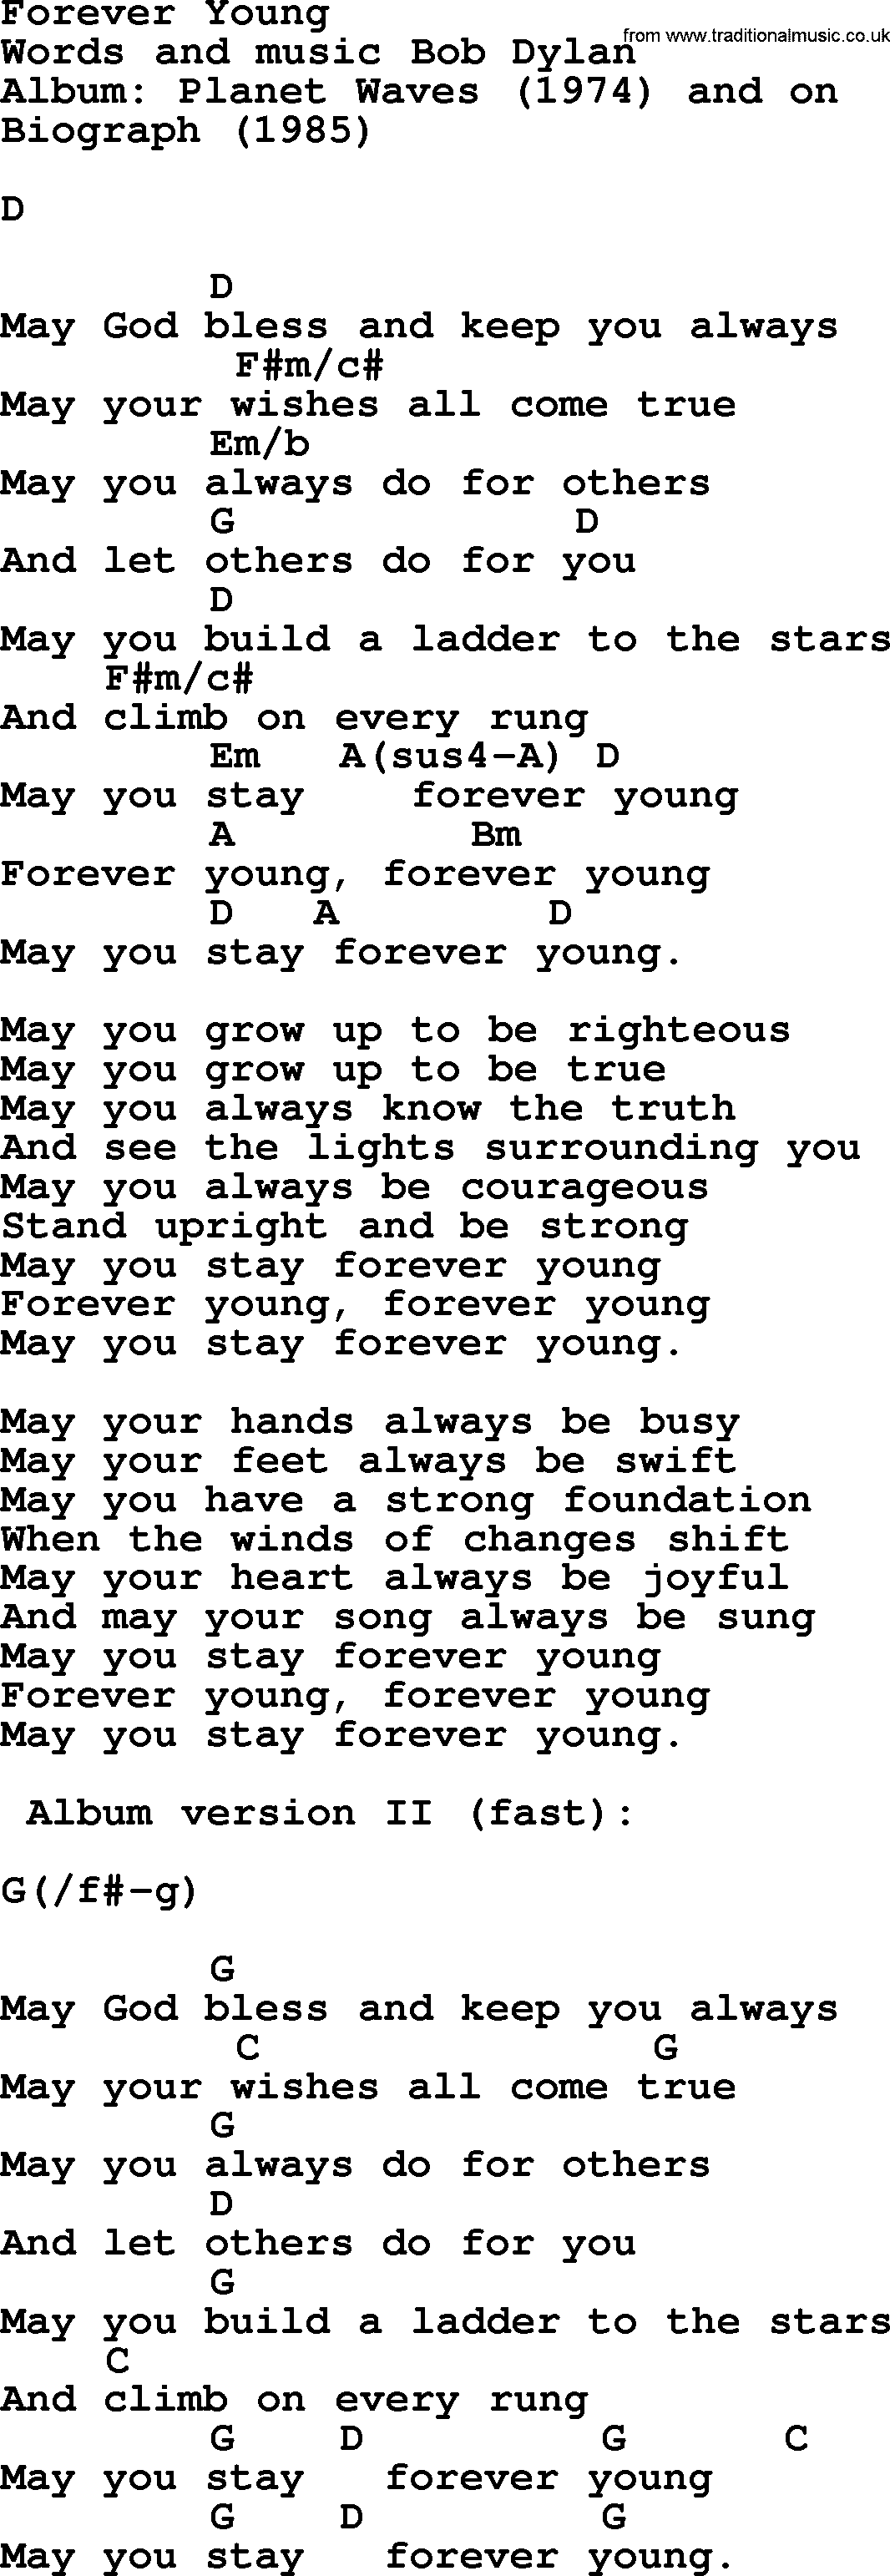 Bob dylan song lyrics with chords forever young guitar bob dylan song lyrics with chords forever young hexwebz Image collections